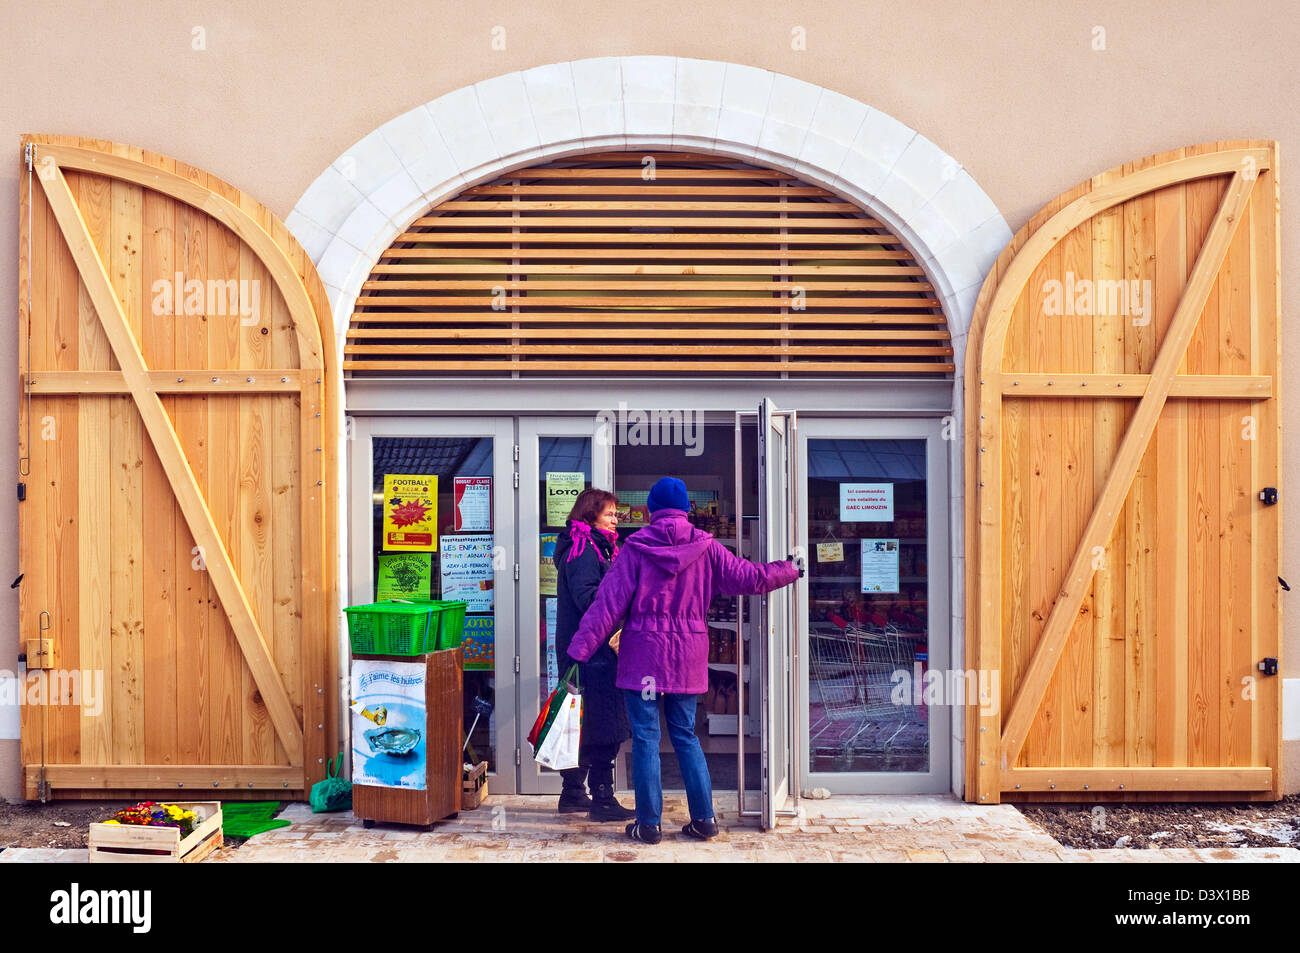 New arched wood double doors on shop frontage - France. - Stock Image